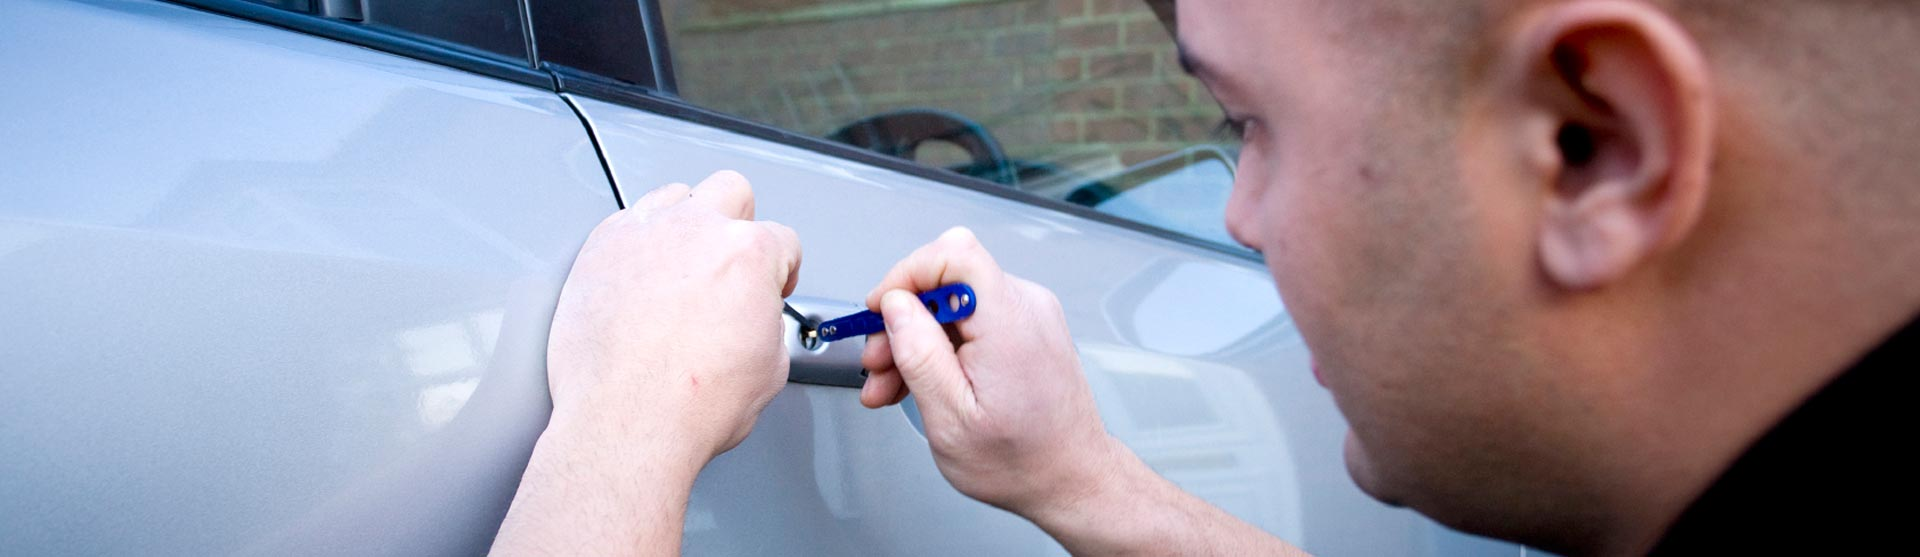 Glendale: Commercial Locksmith, Residential Locksmith and Automotive Locksmith